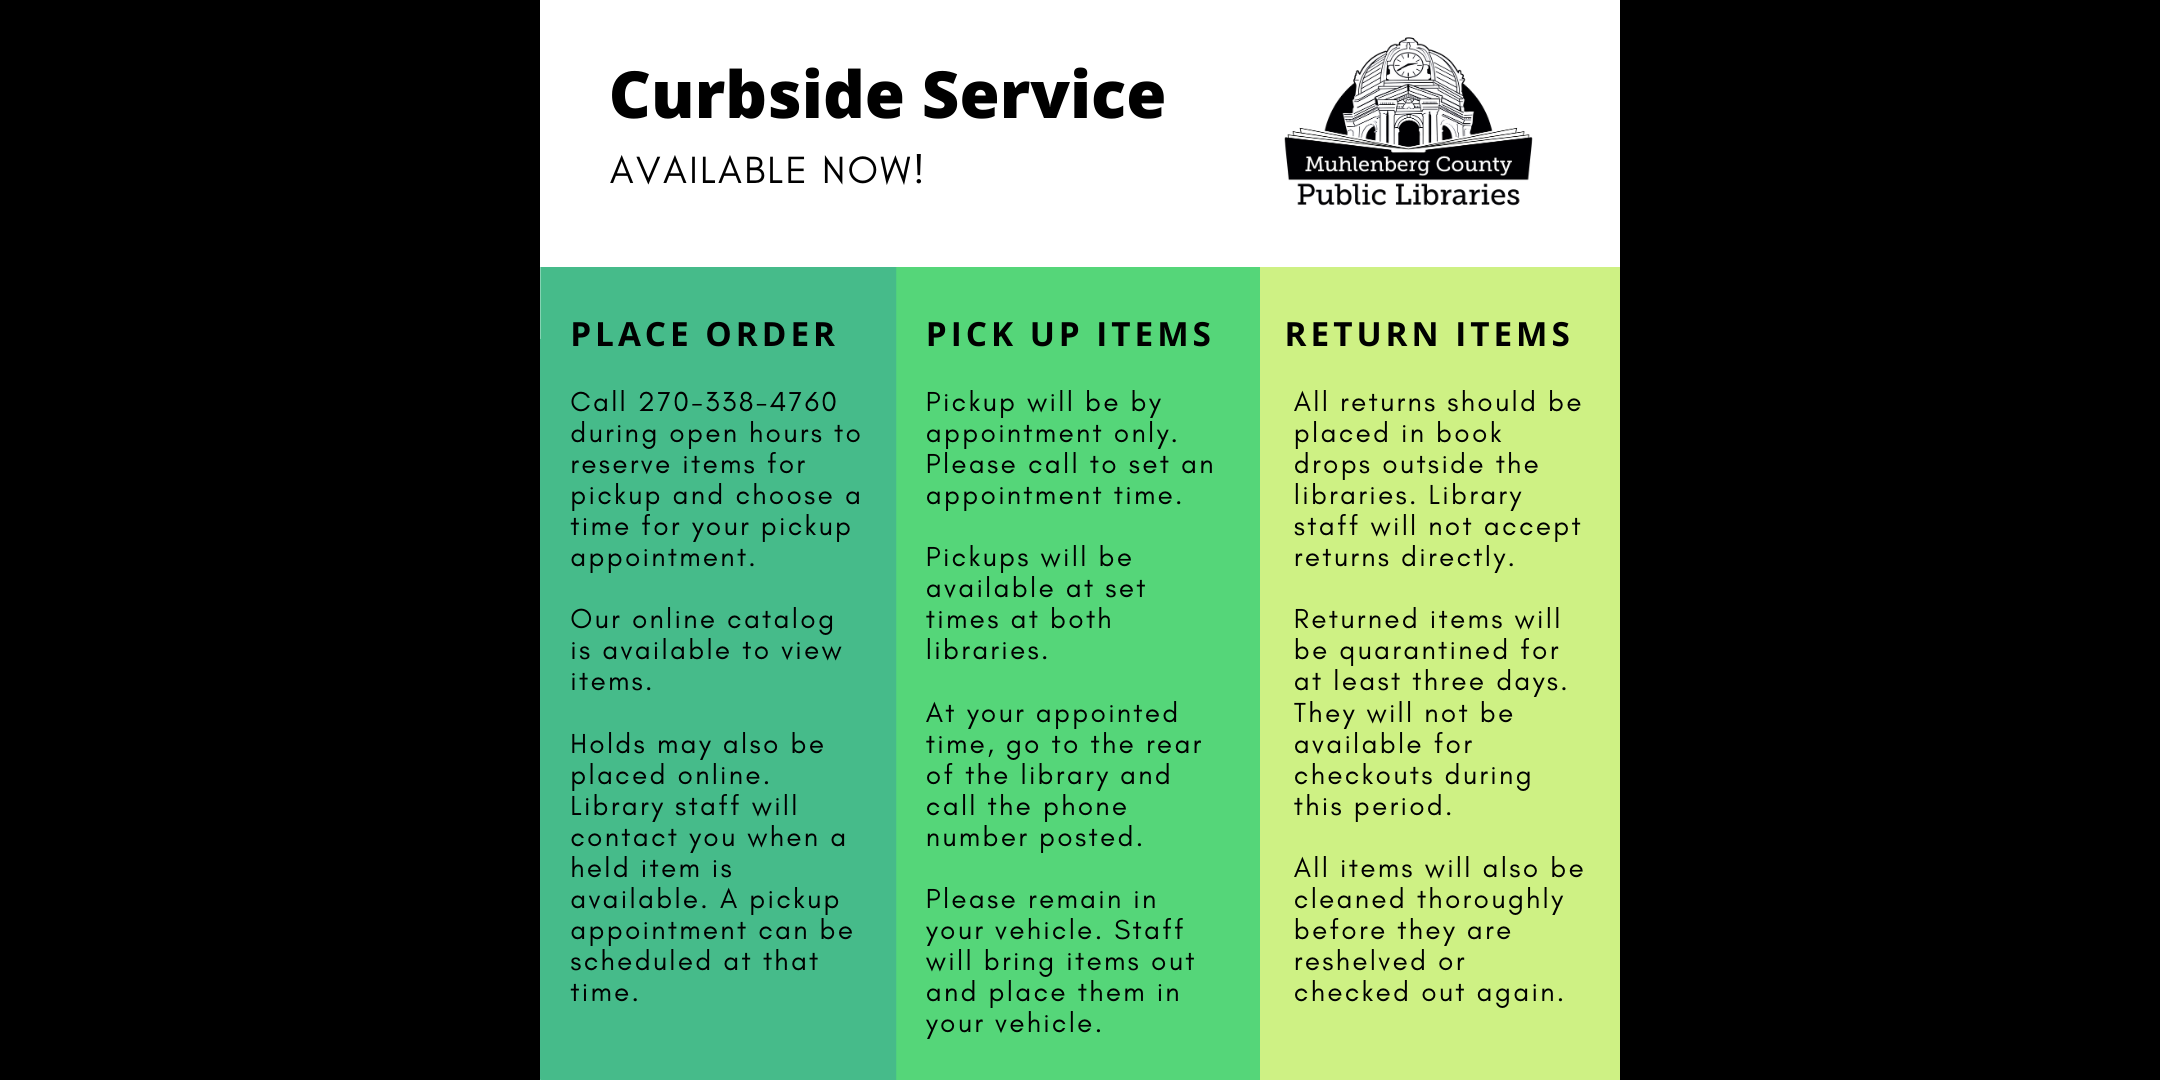 Curbside service available now!